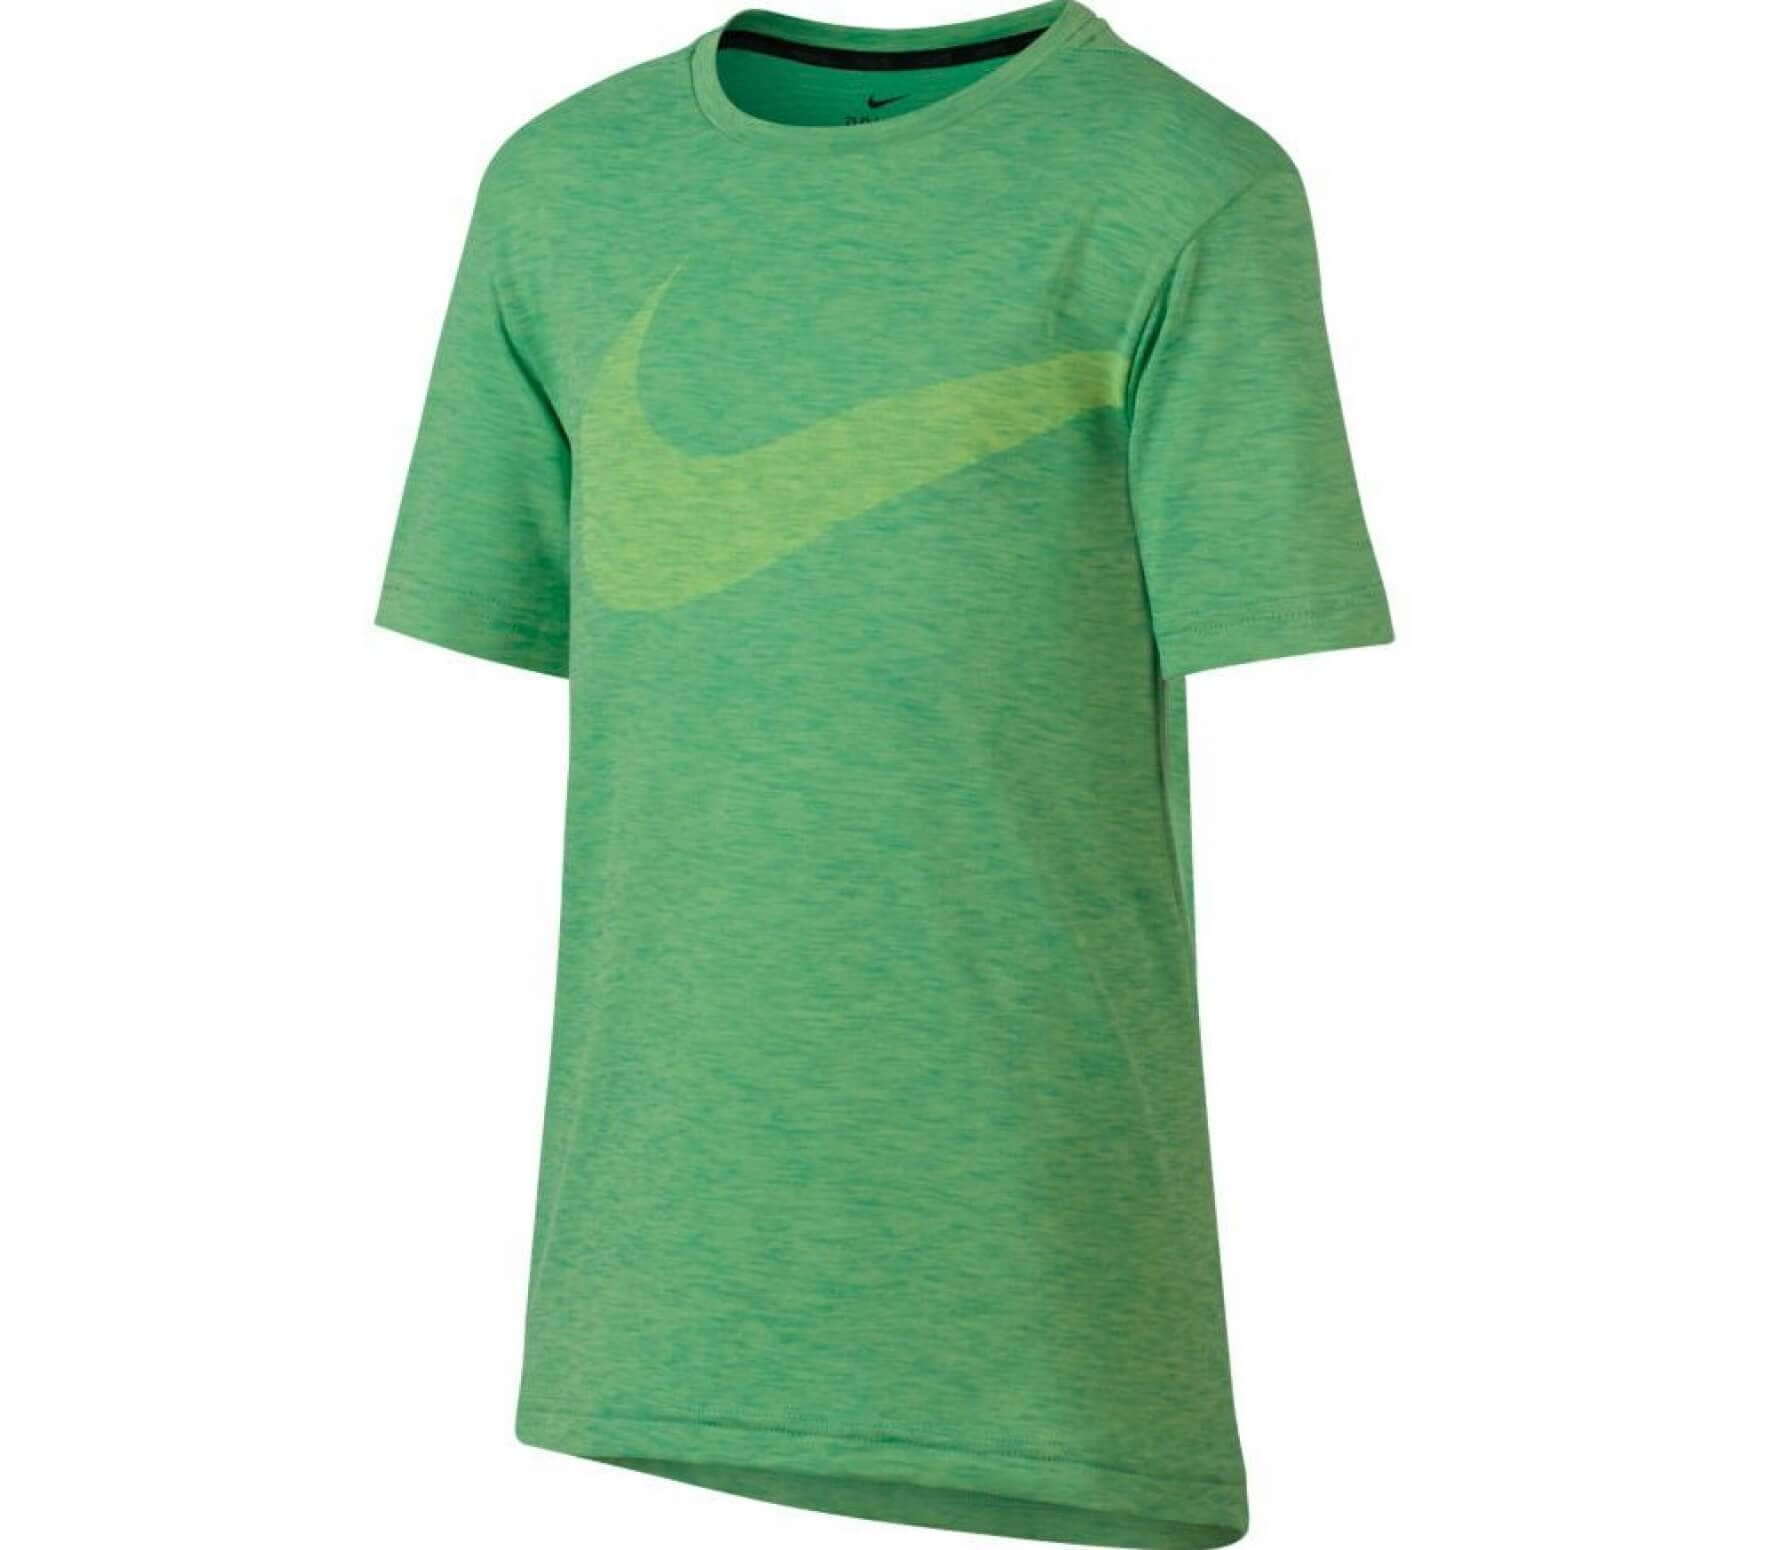 Nike - Breathe training children s training top (green) handla online på ... aff188413f1b8